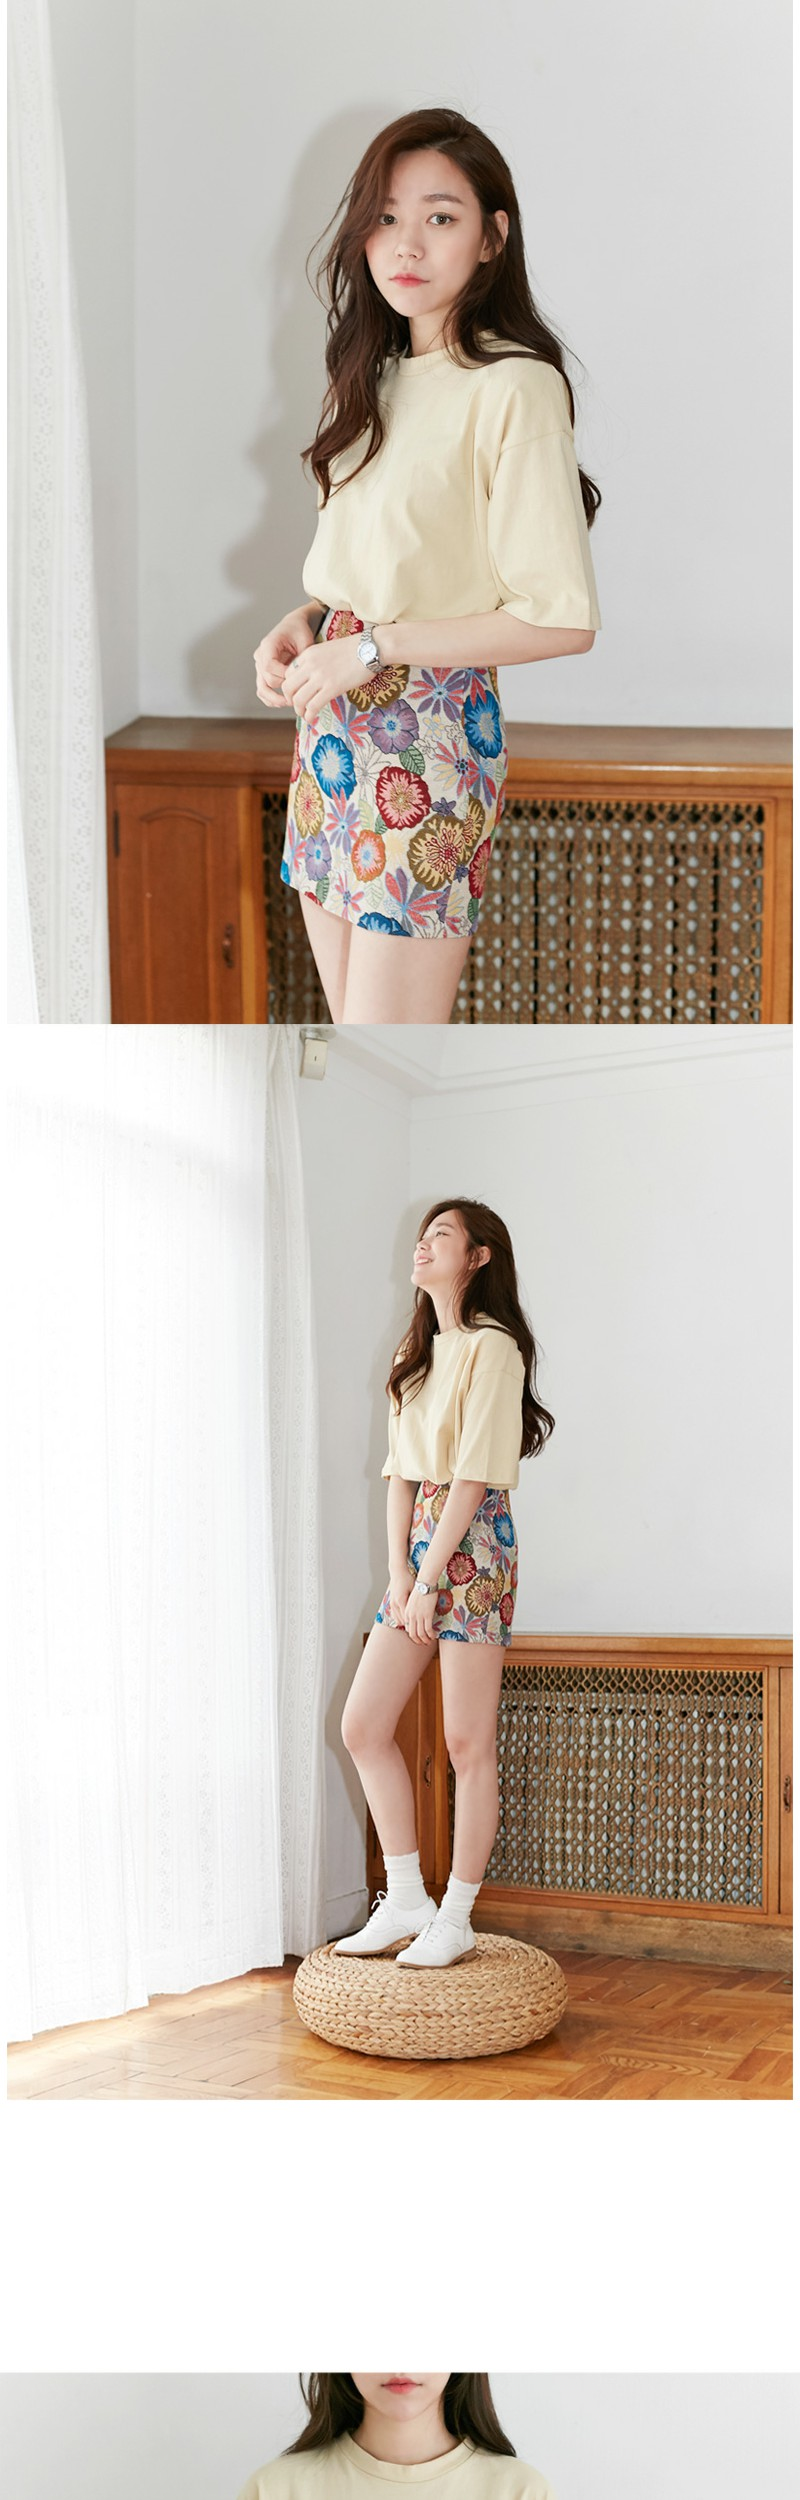 Cotton candy round T_H (size : free)